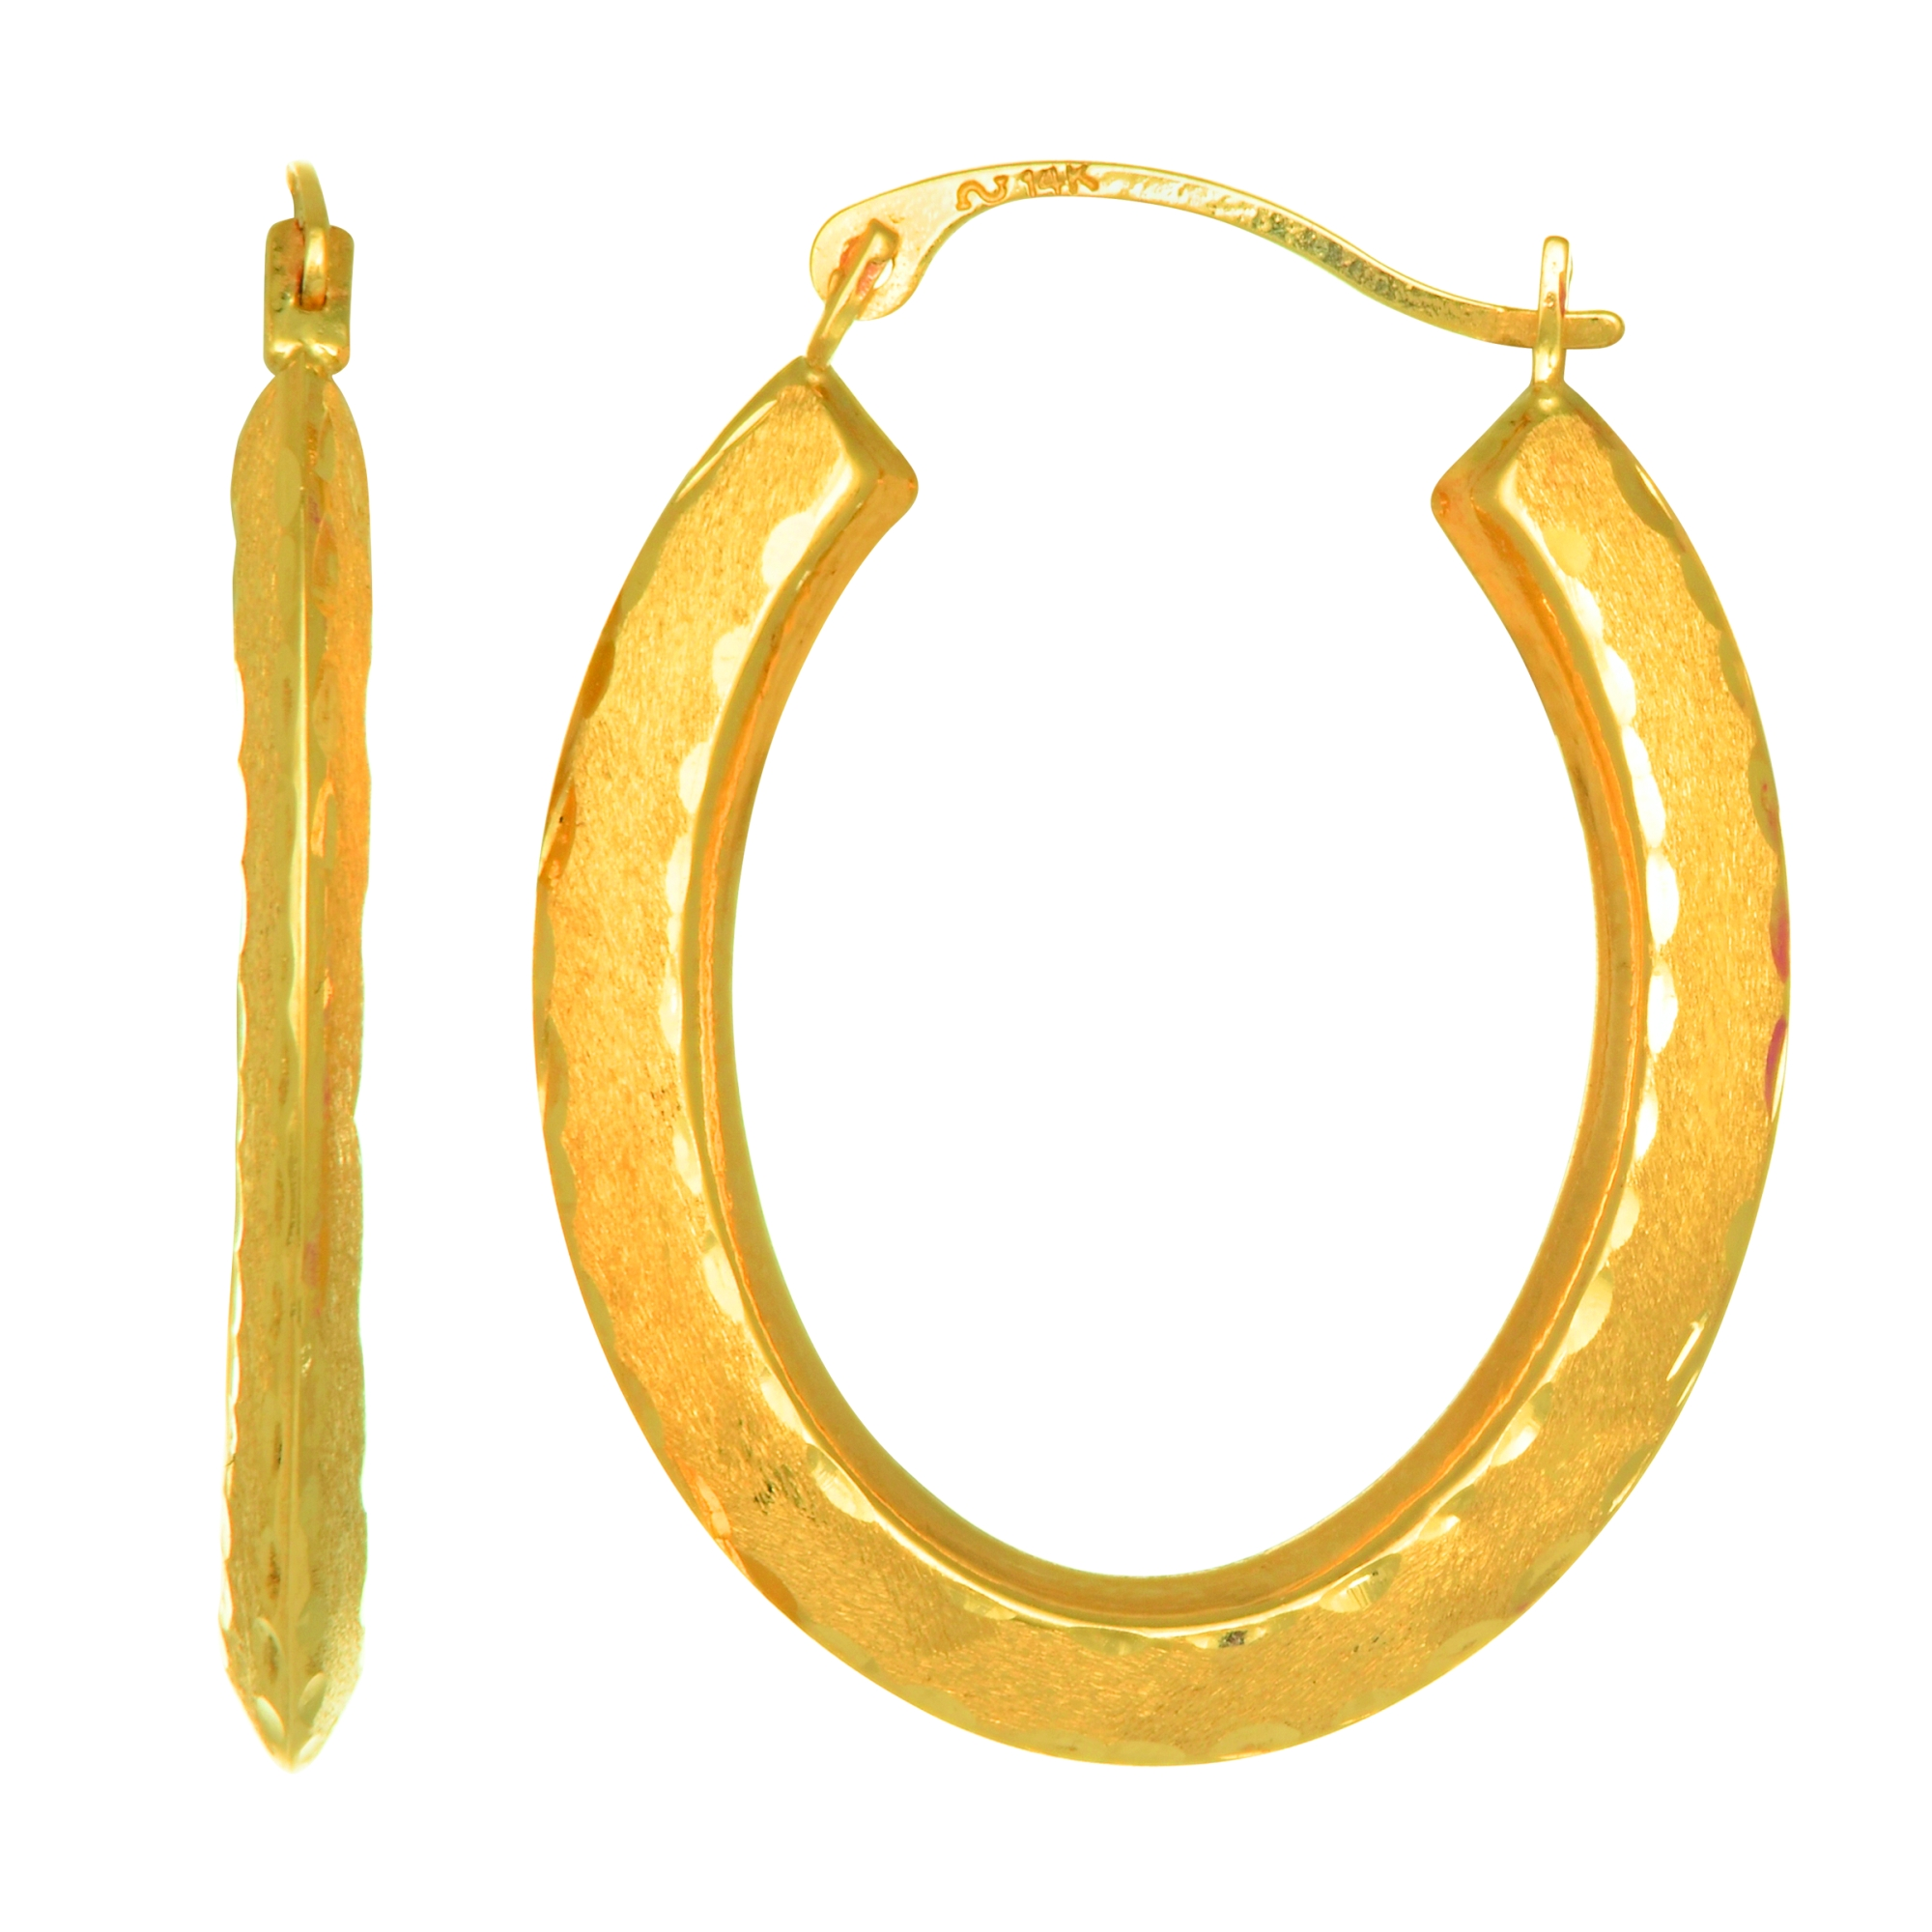 10K Yellow Gold Oval Hoop Baby Earring